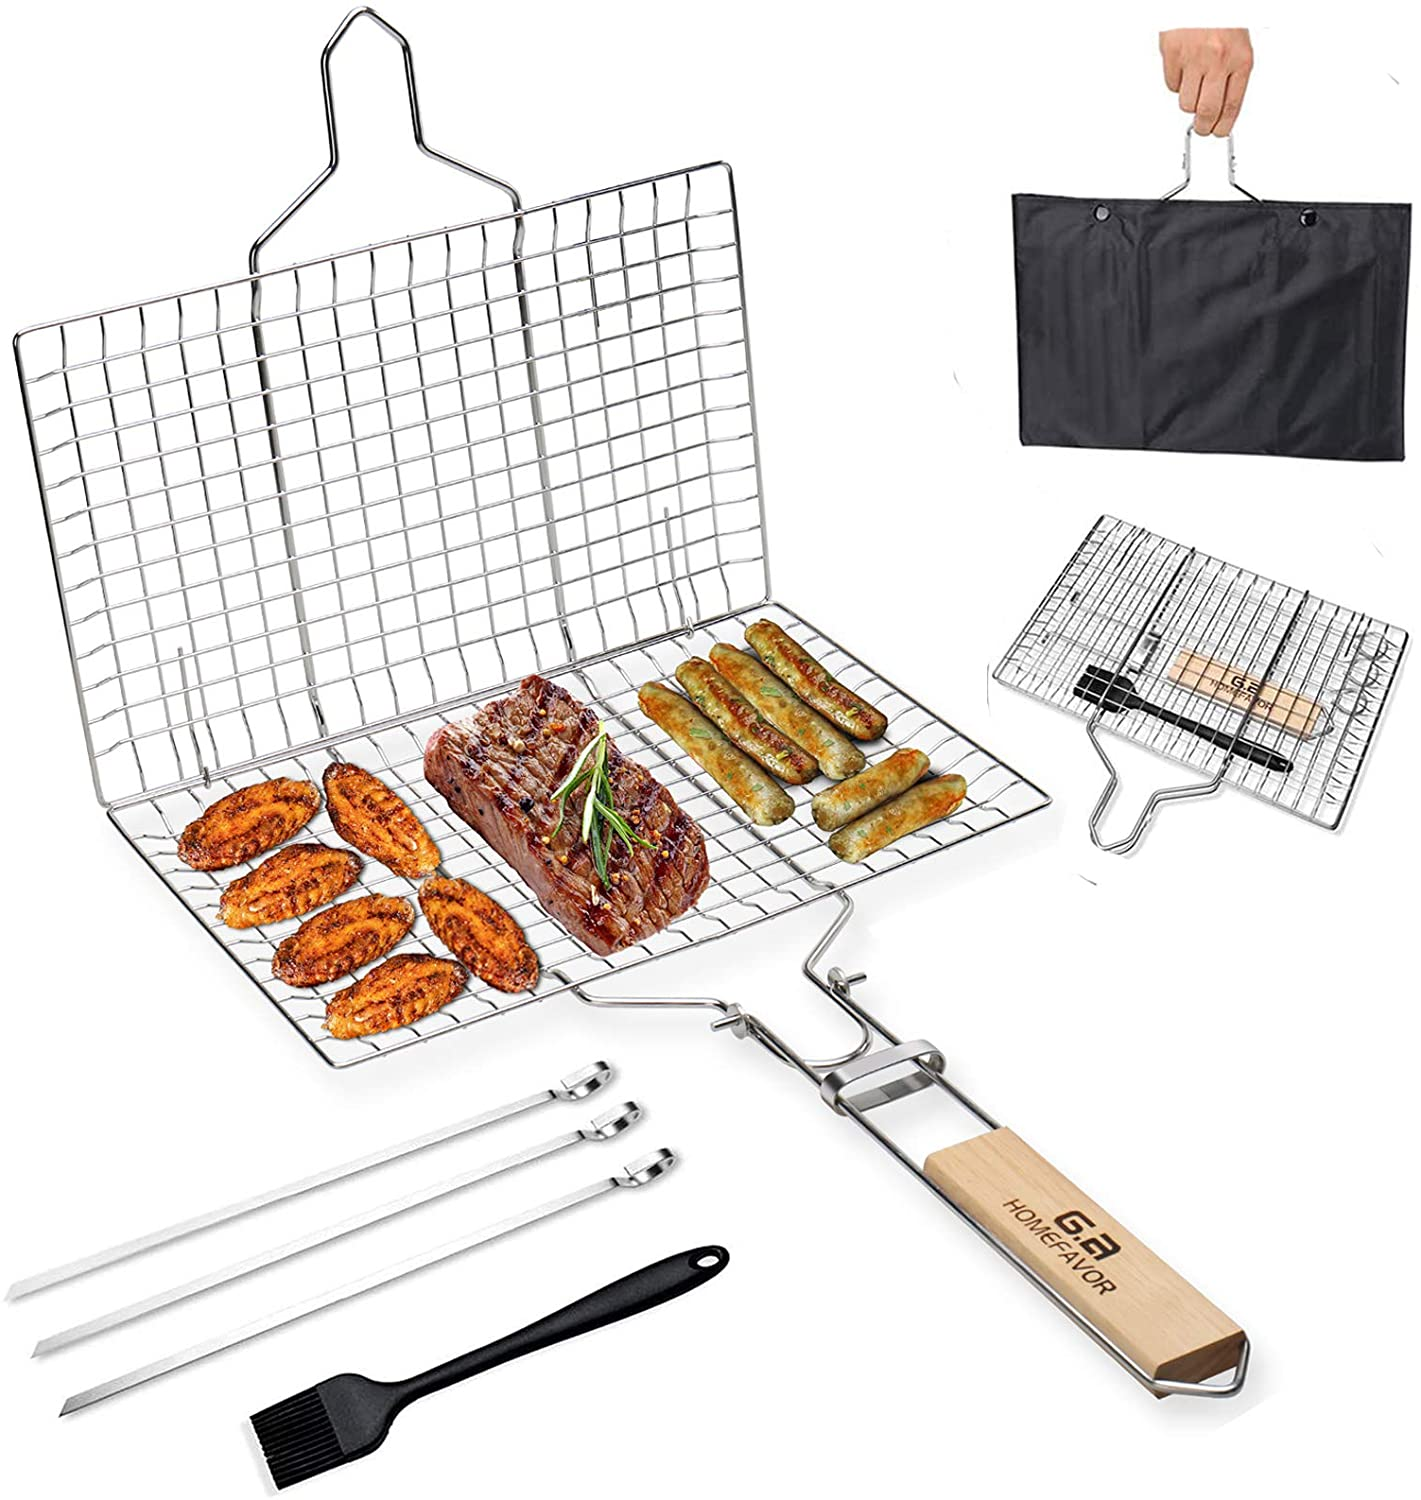 G.a HOMEFAVOR BBQ Fish Grill Basket Food Grade 18/8 304 Stainless Steel, Folding Portable Oak Handle, for Grilling Fish Vegetables Shrimp Meat Steak (Silicone Brush+Pouch+3x12.5 Skewers)